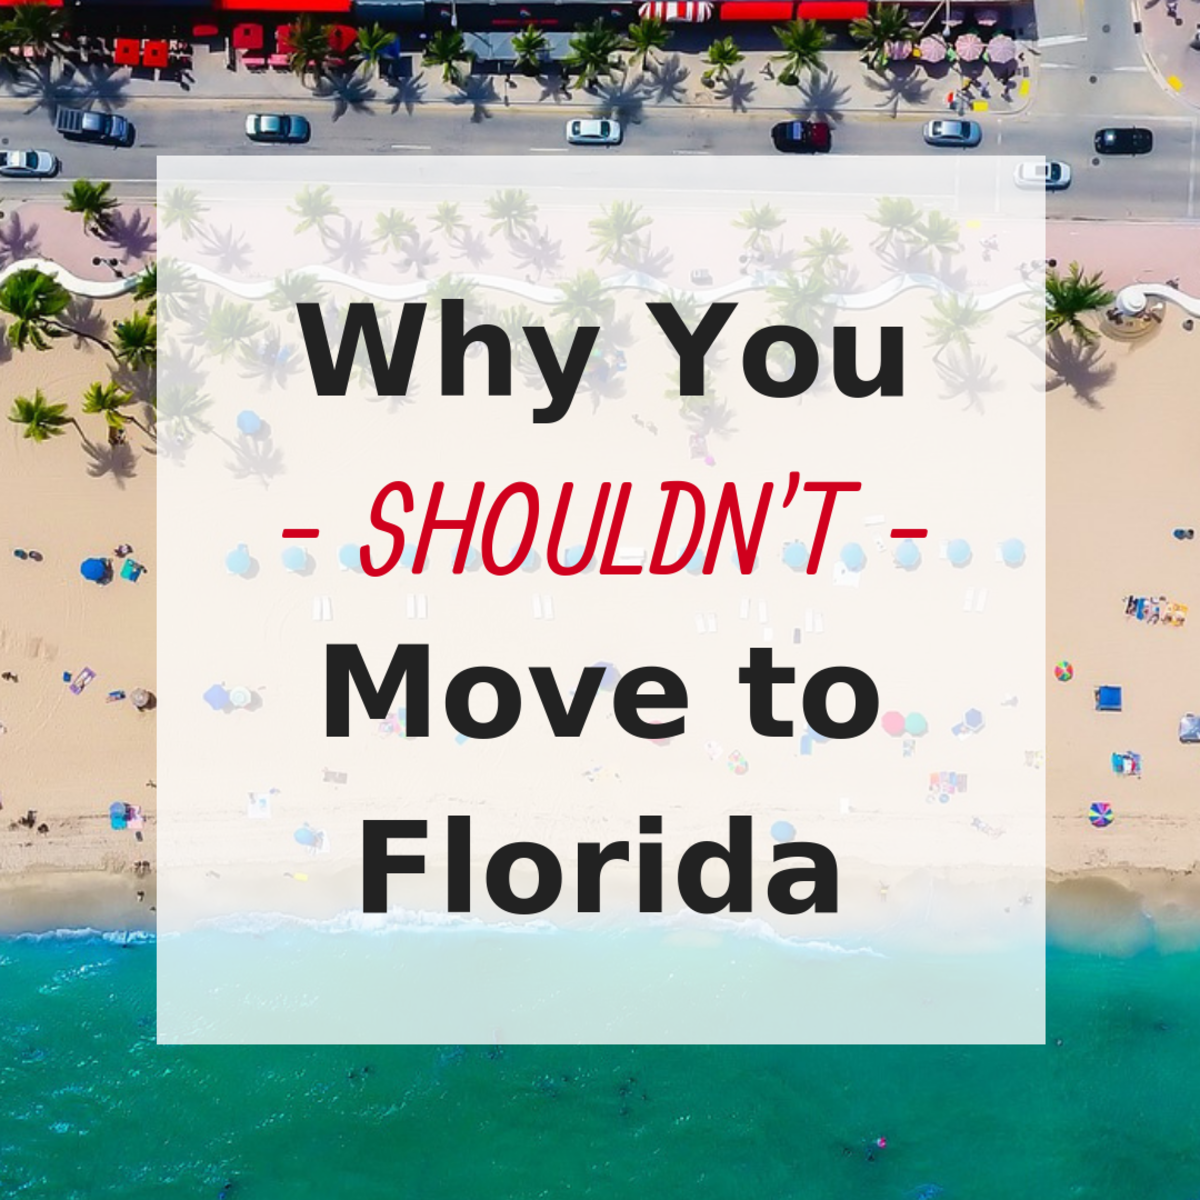 Lots of people want to move to Florida, but it isn't all sunshine and alligators.